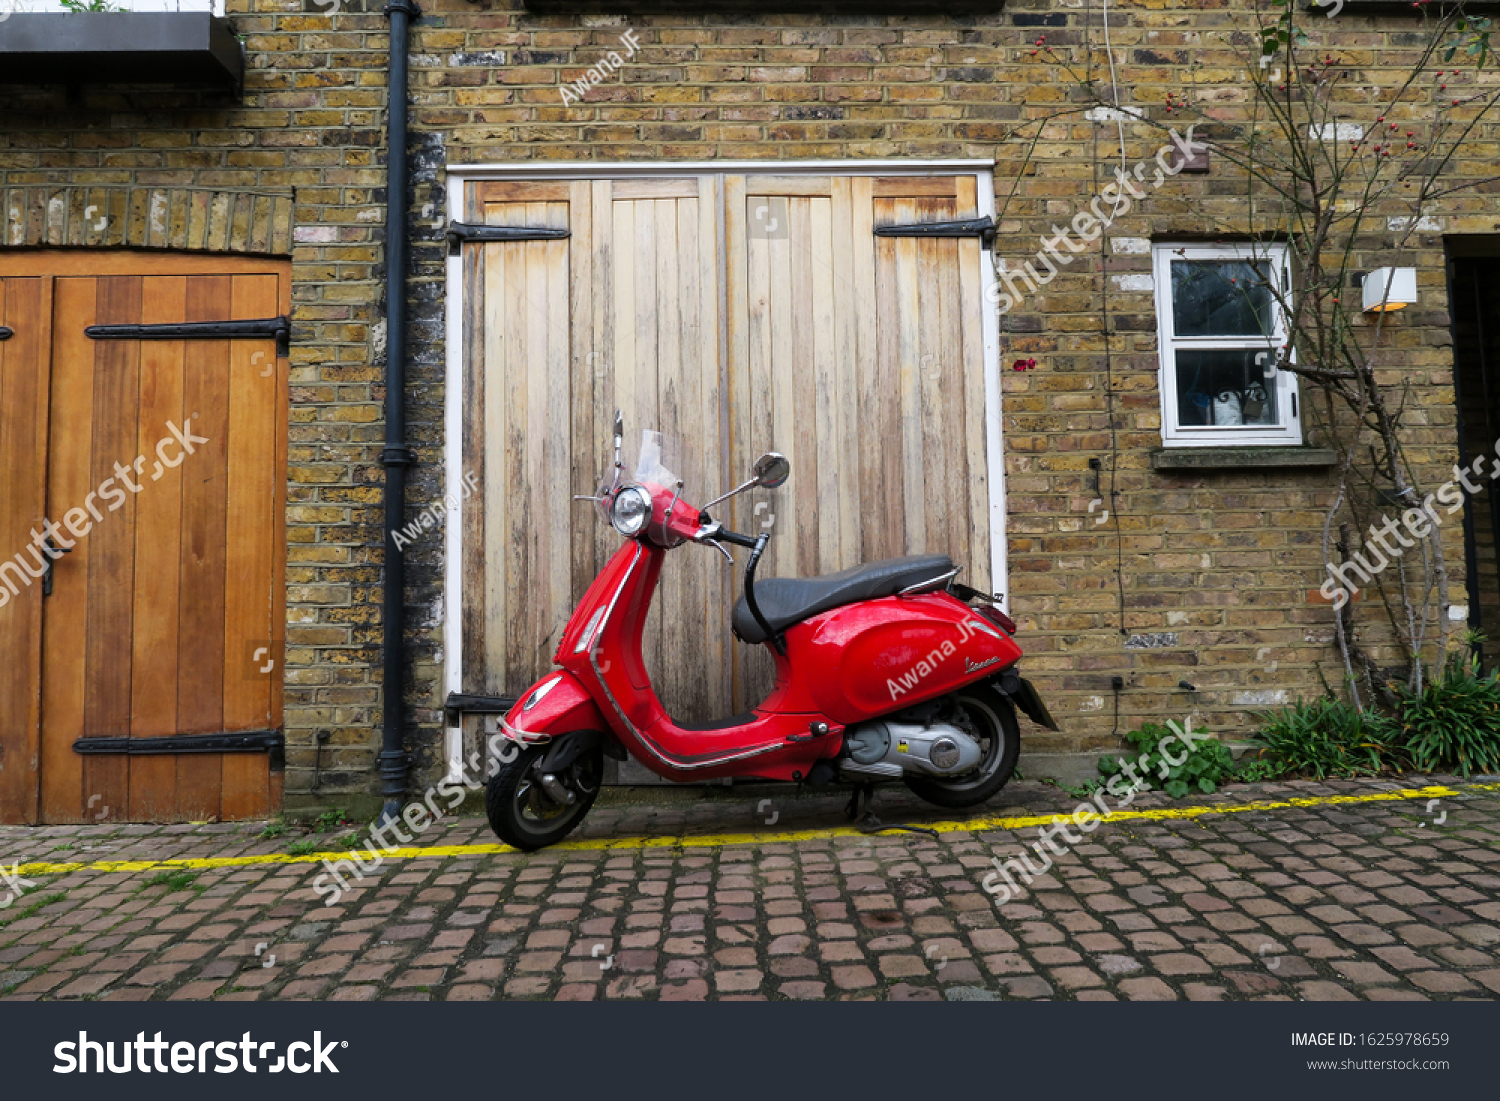 London, UK - january 2020: red vintage scooter parked in front of a wooden garage door